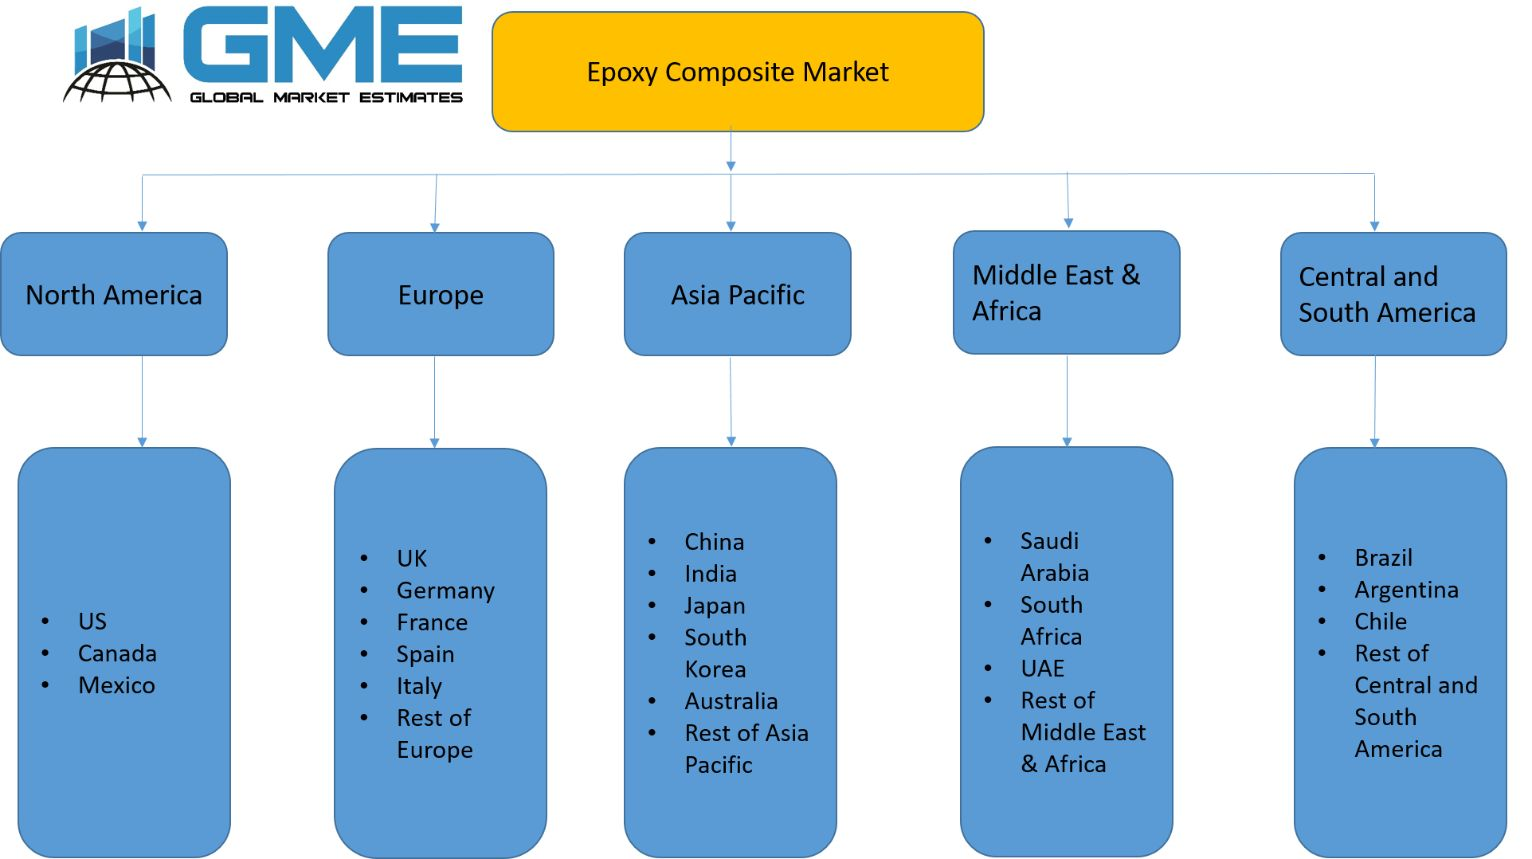 Epoxy Composite Market - Regional Analysis